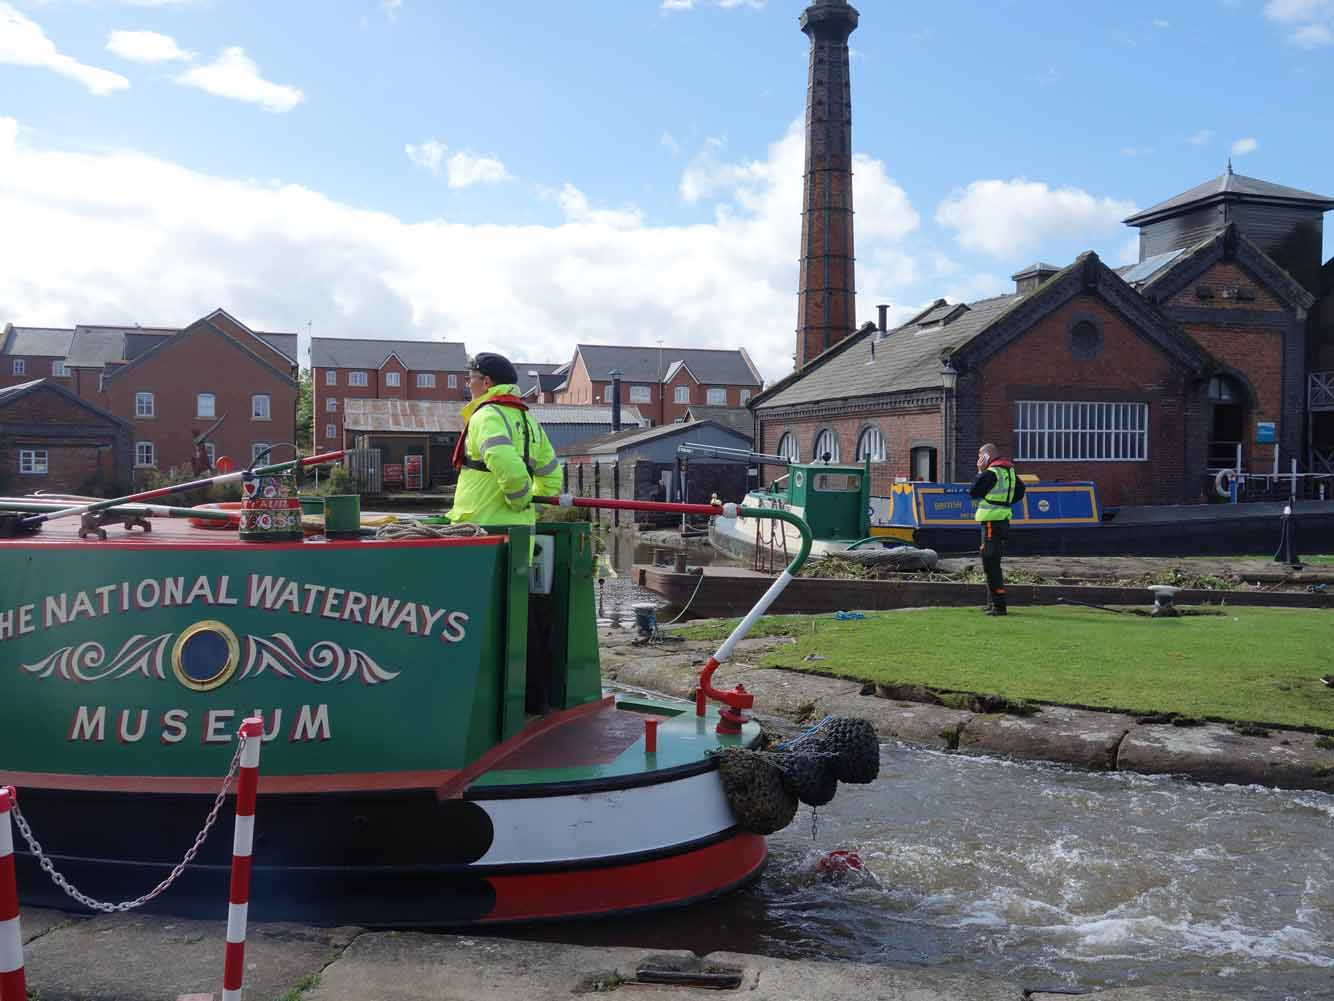 Day trip to Waterways Museum and Cheshire Oaks